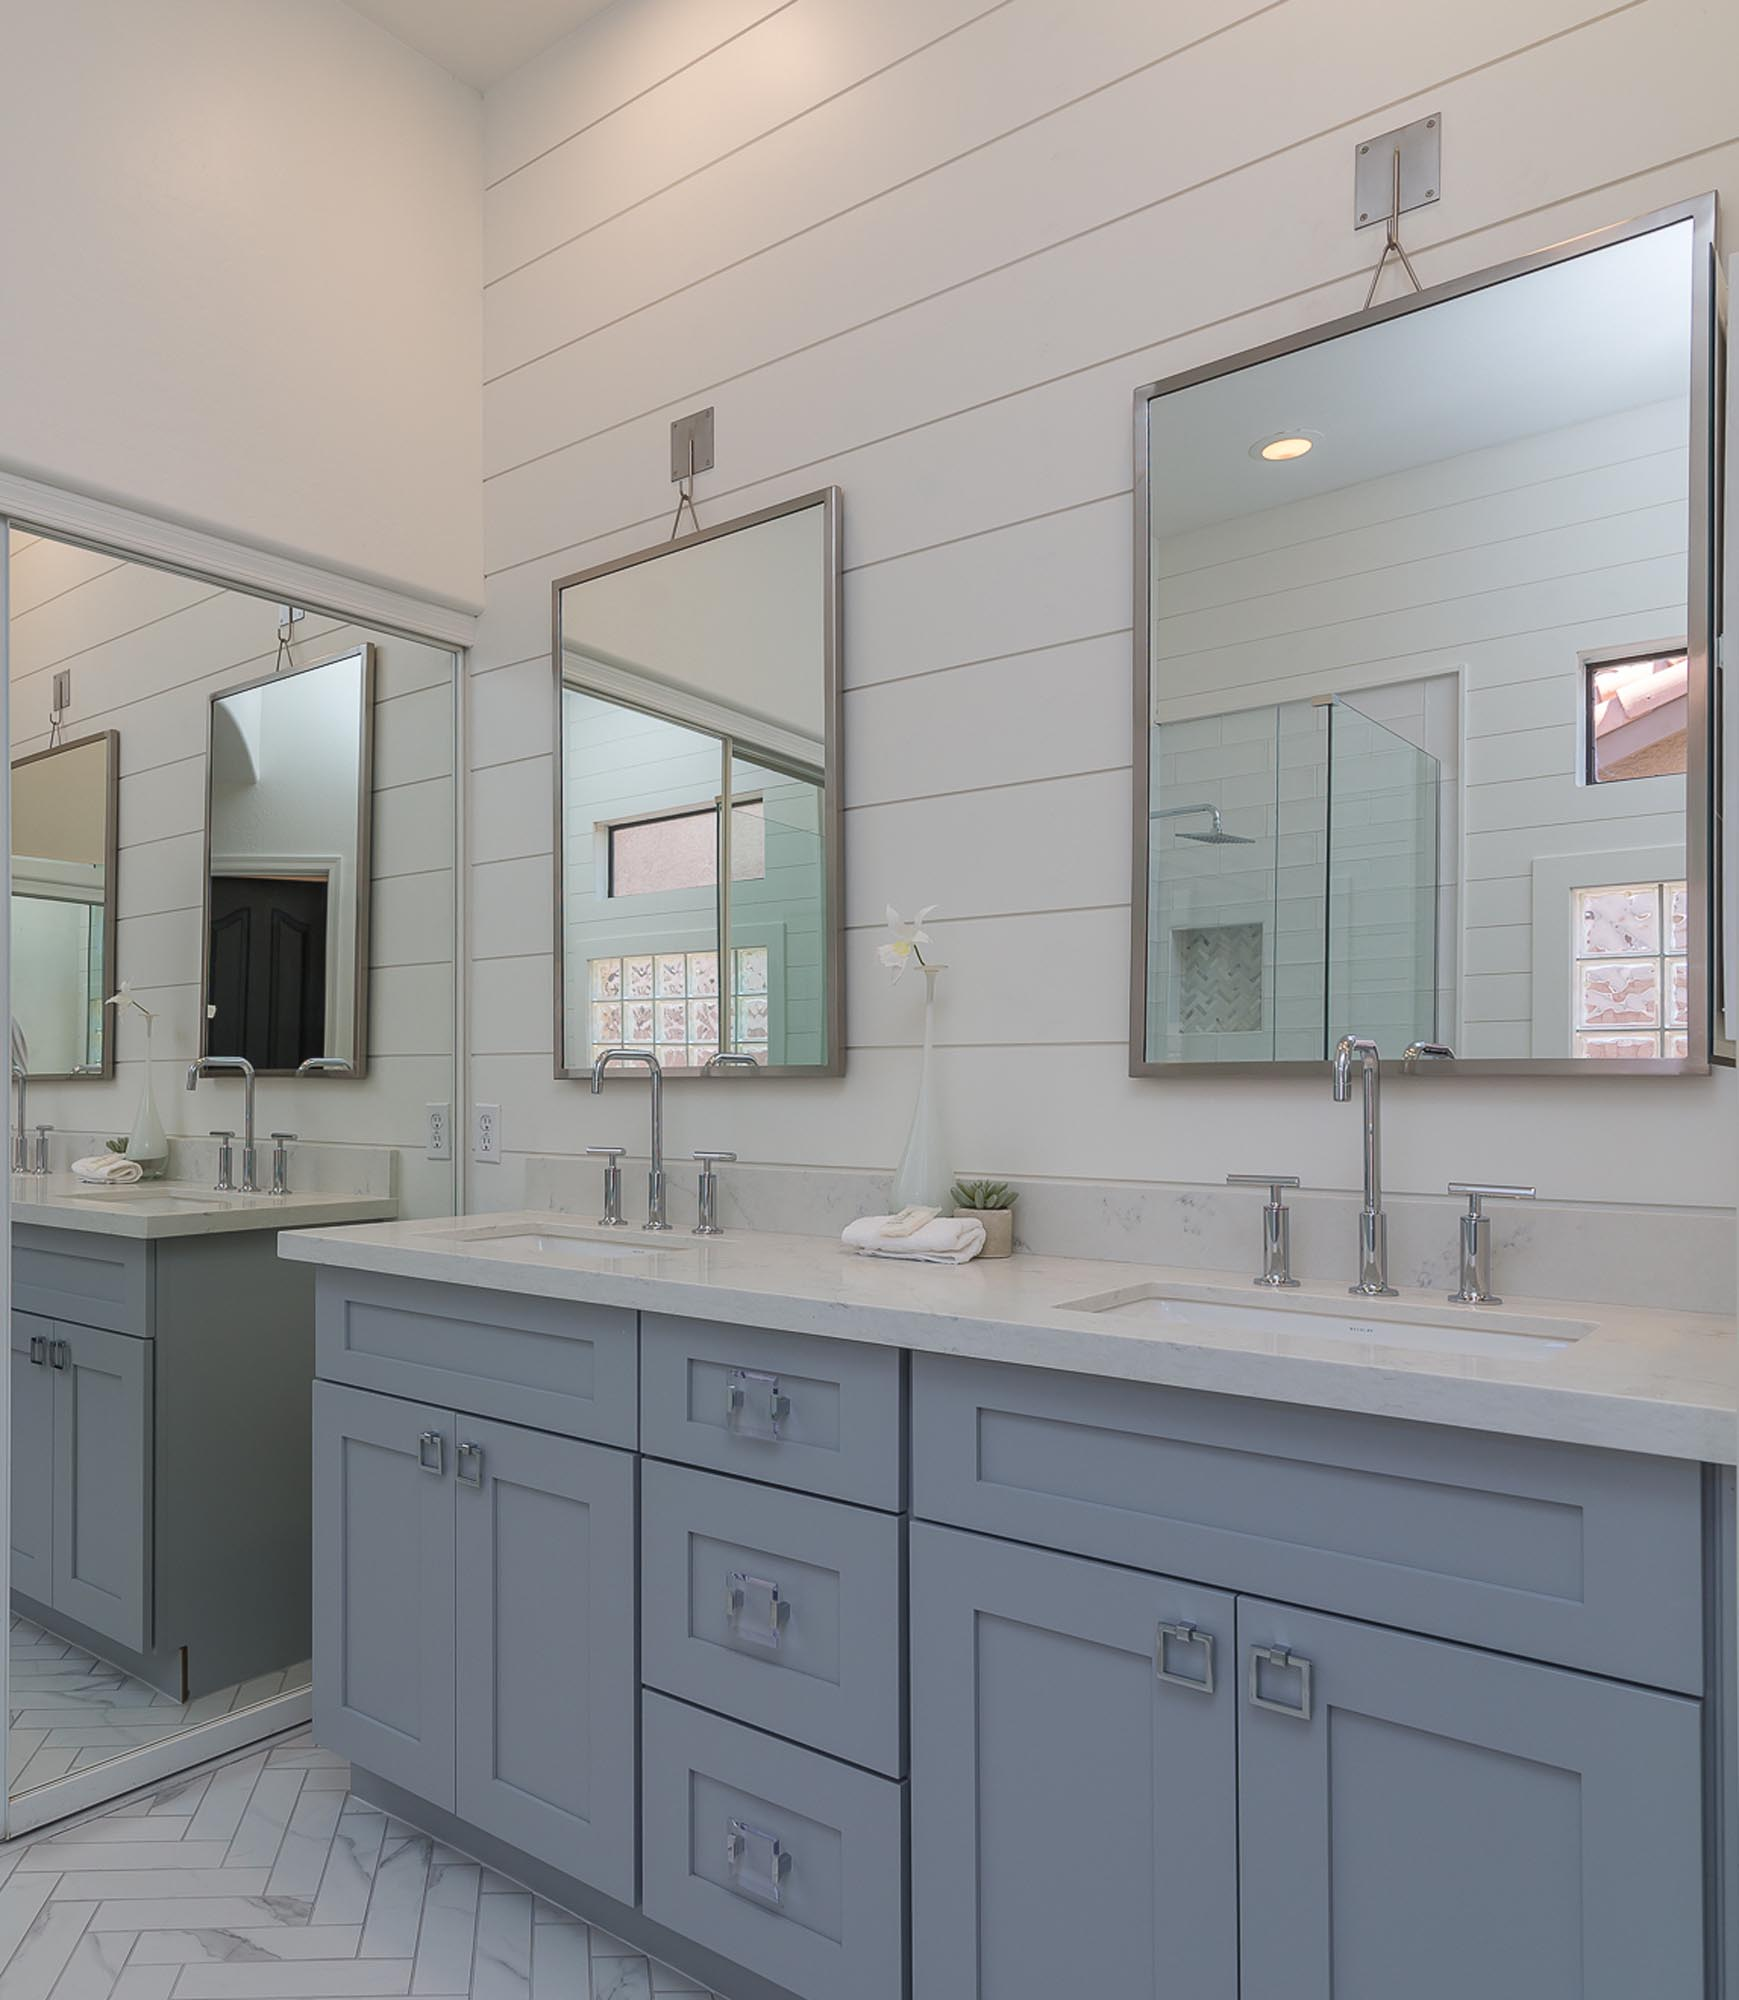 Bathroom washing area with two large mirrors